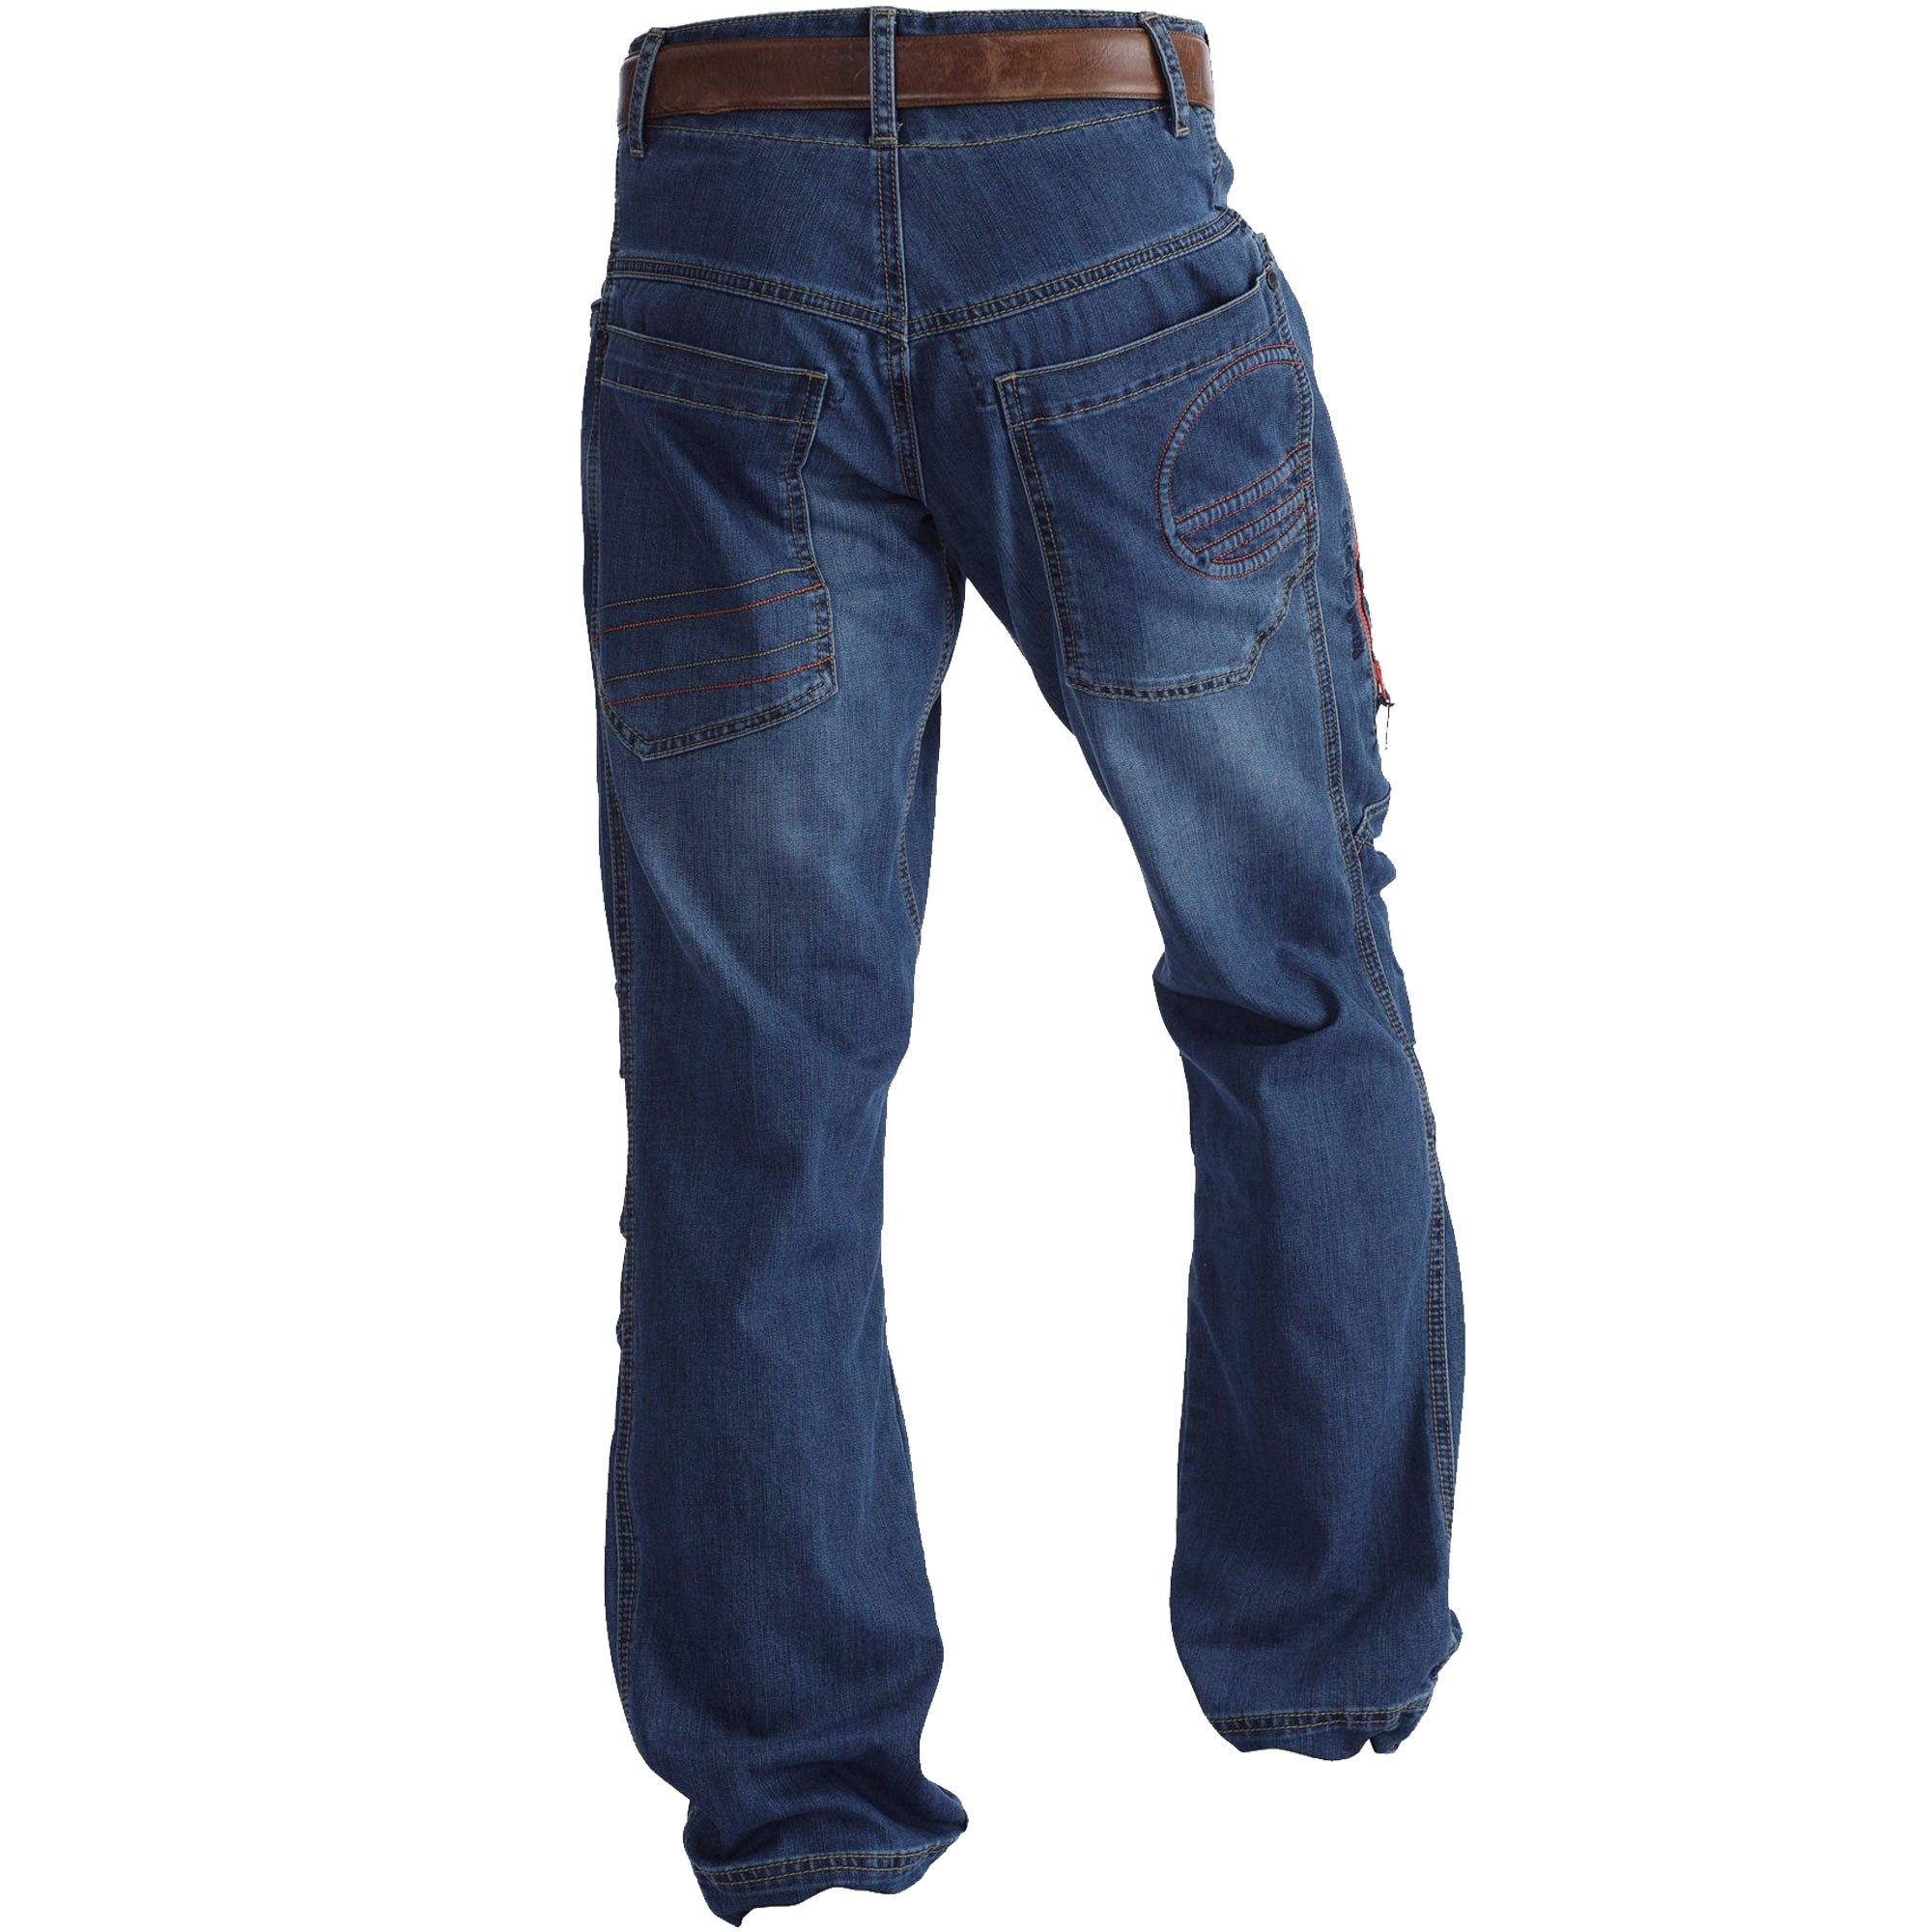 Wild-Country-Motion-Jean-Jeans-Blue-back-S17